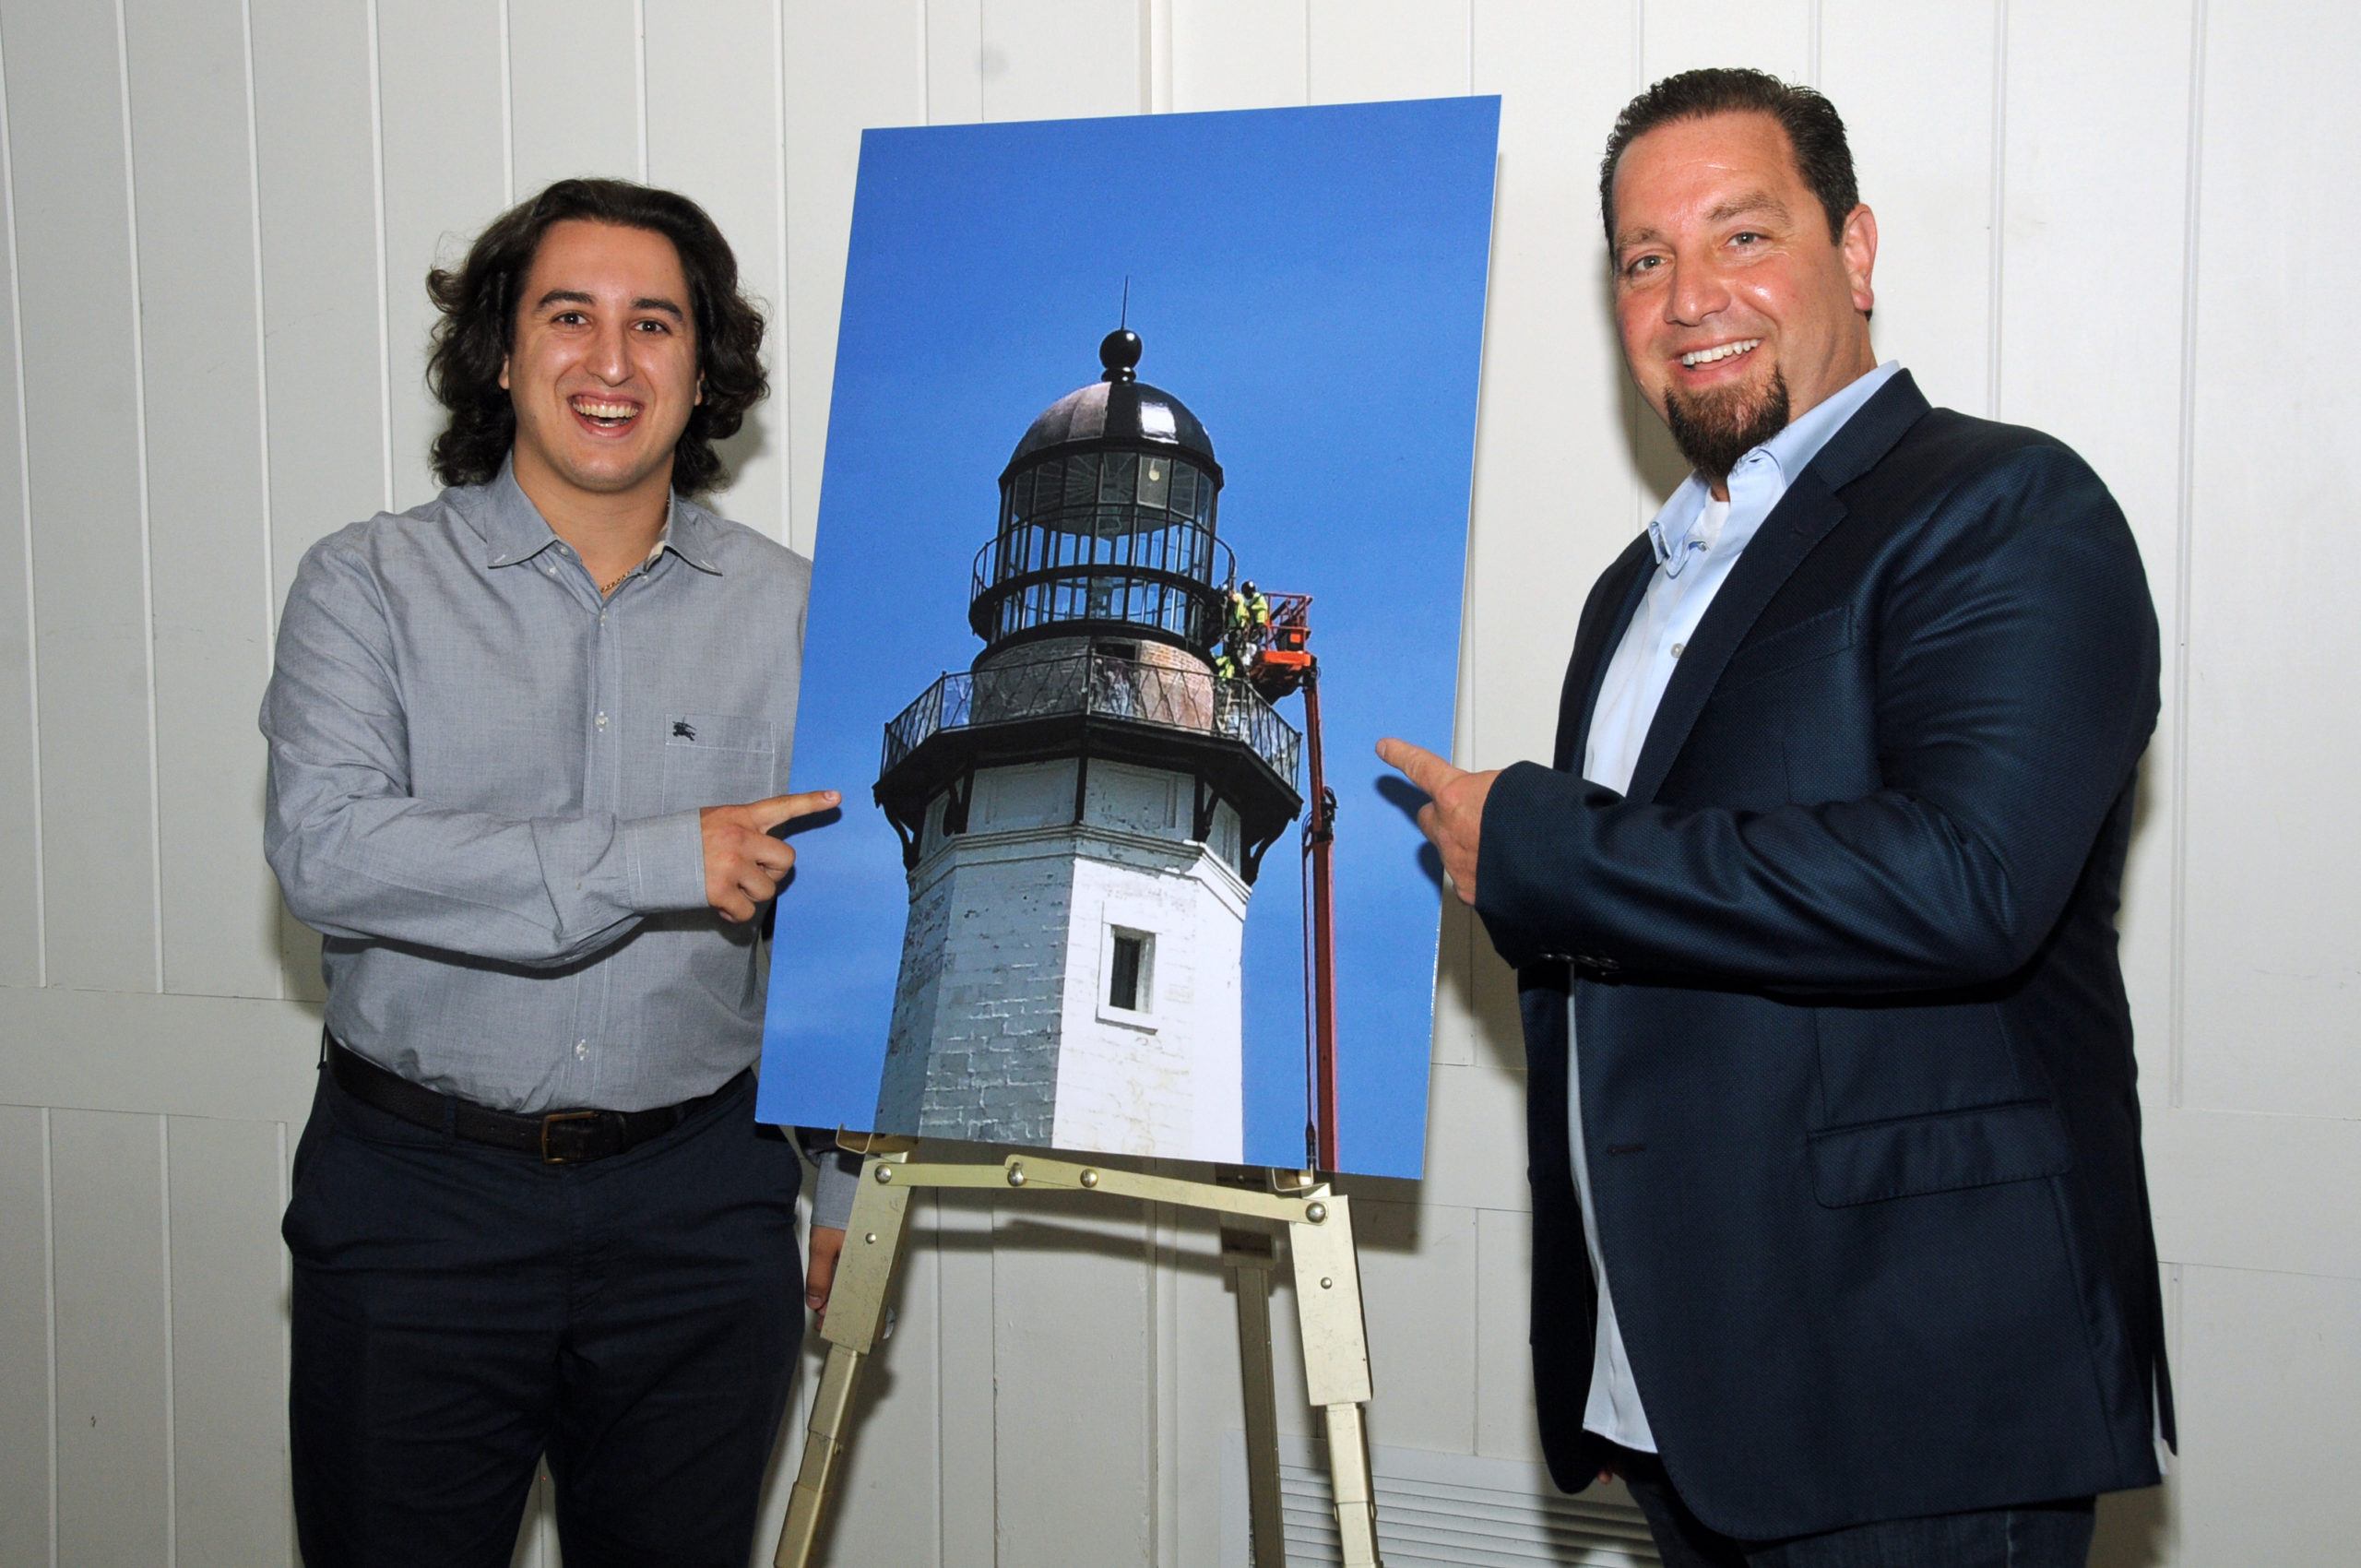 Vincent Amoroso, Jr. and Vincent Amoroso, father and son from Installation Specialties Group the company that is working on the lighthouse restoration at the Montauk Historical Society's cocktail party on July 14 to launch a public capital campaign for the Montauk Point Lighthouse restoration.  Work on restoring the tower began in 2019, and is scheduled to be completed by next year.     RICHARD LEWIN